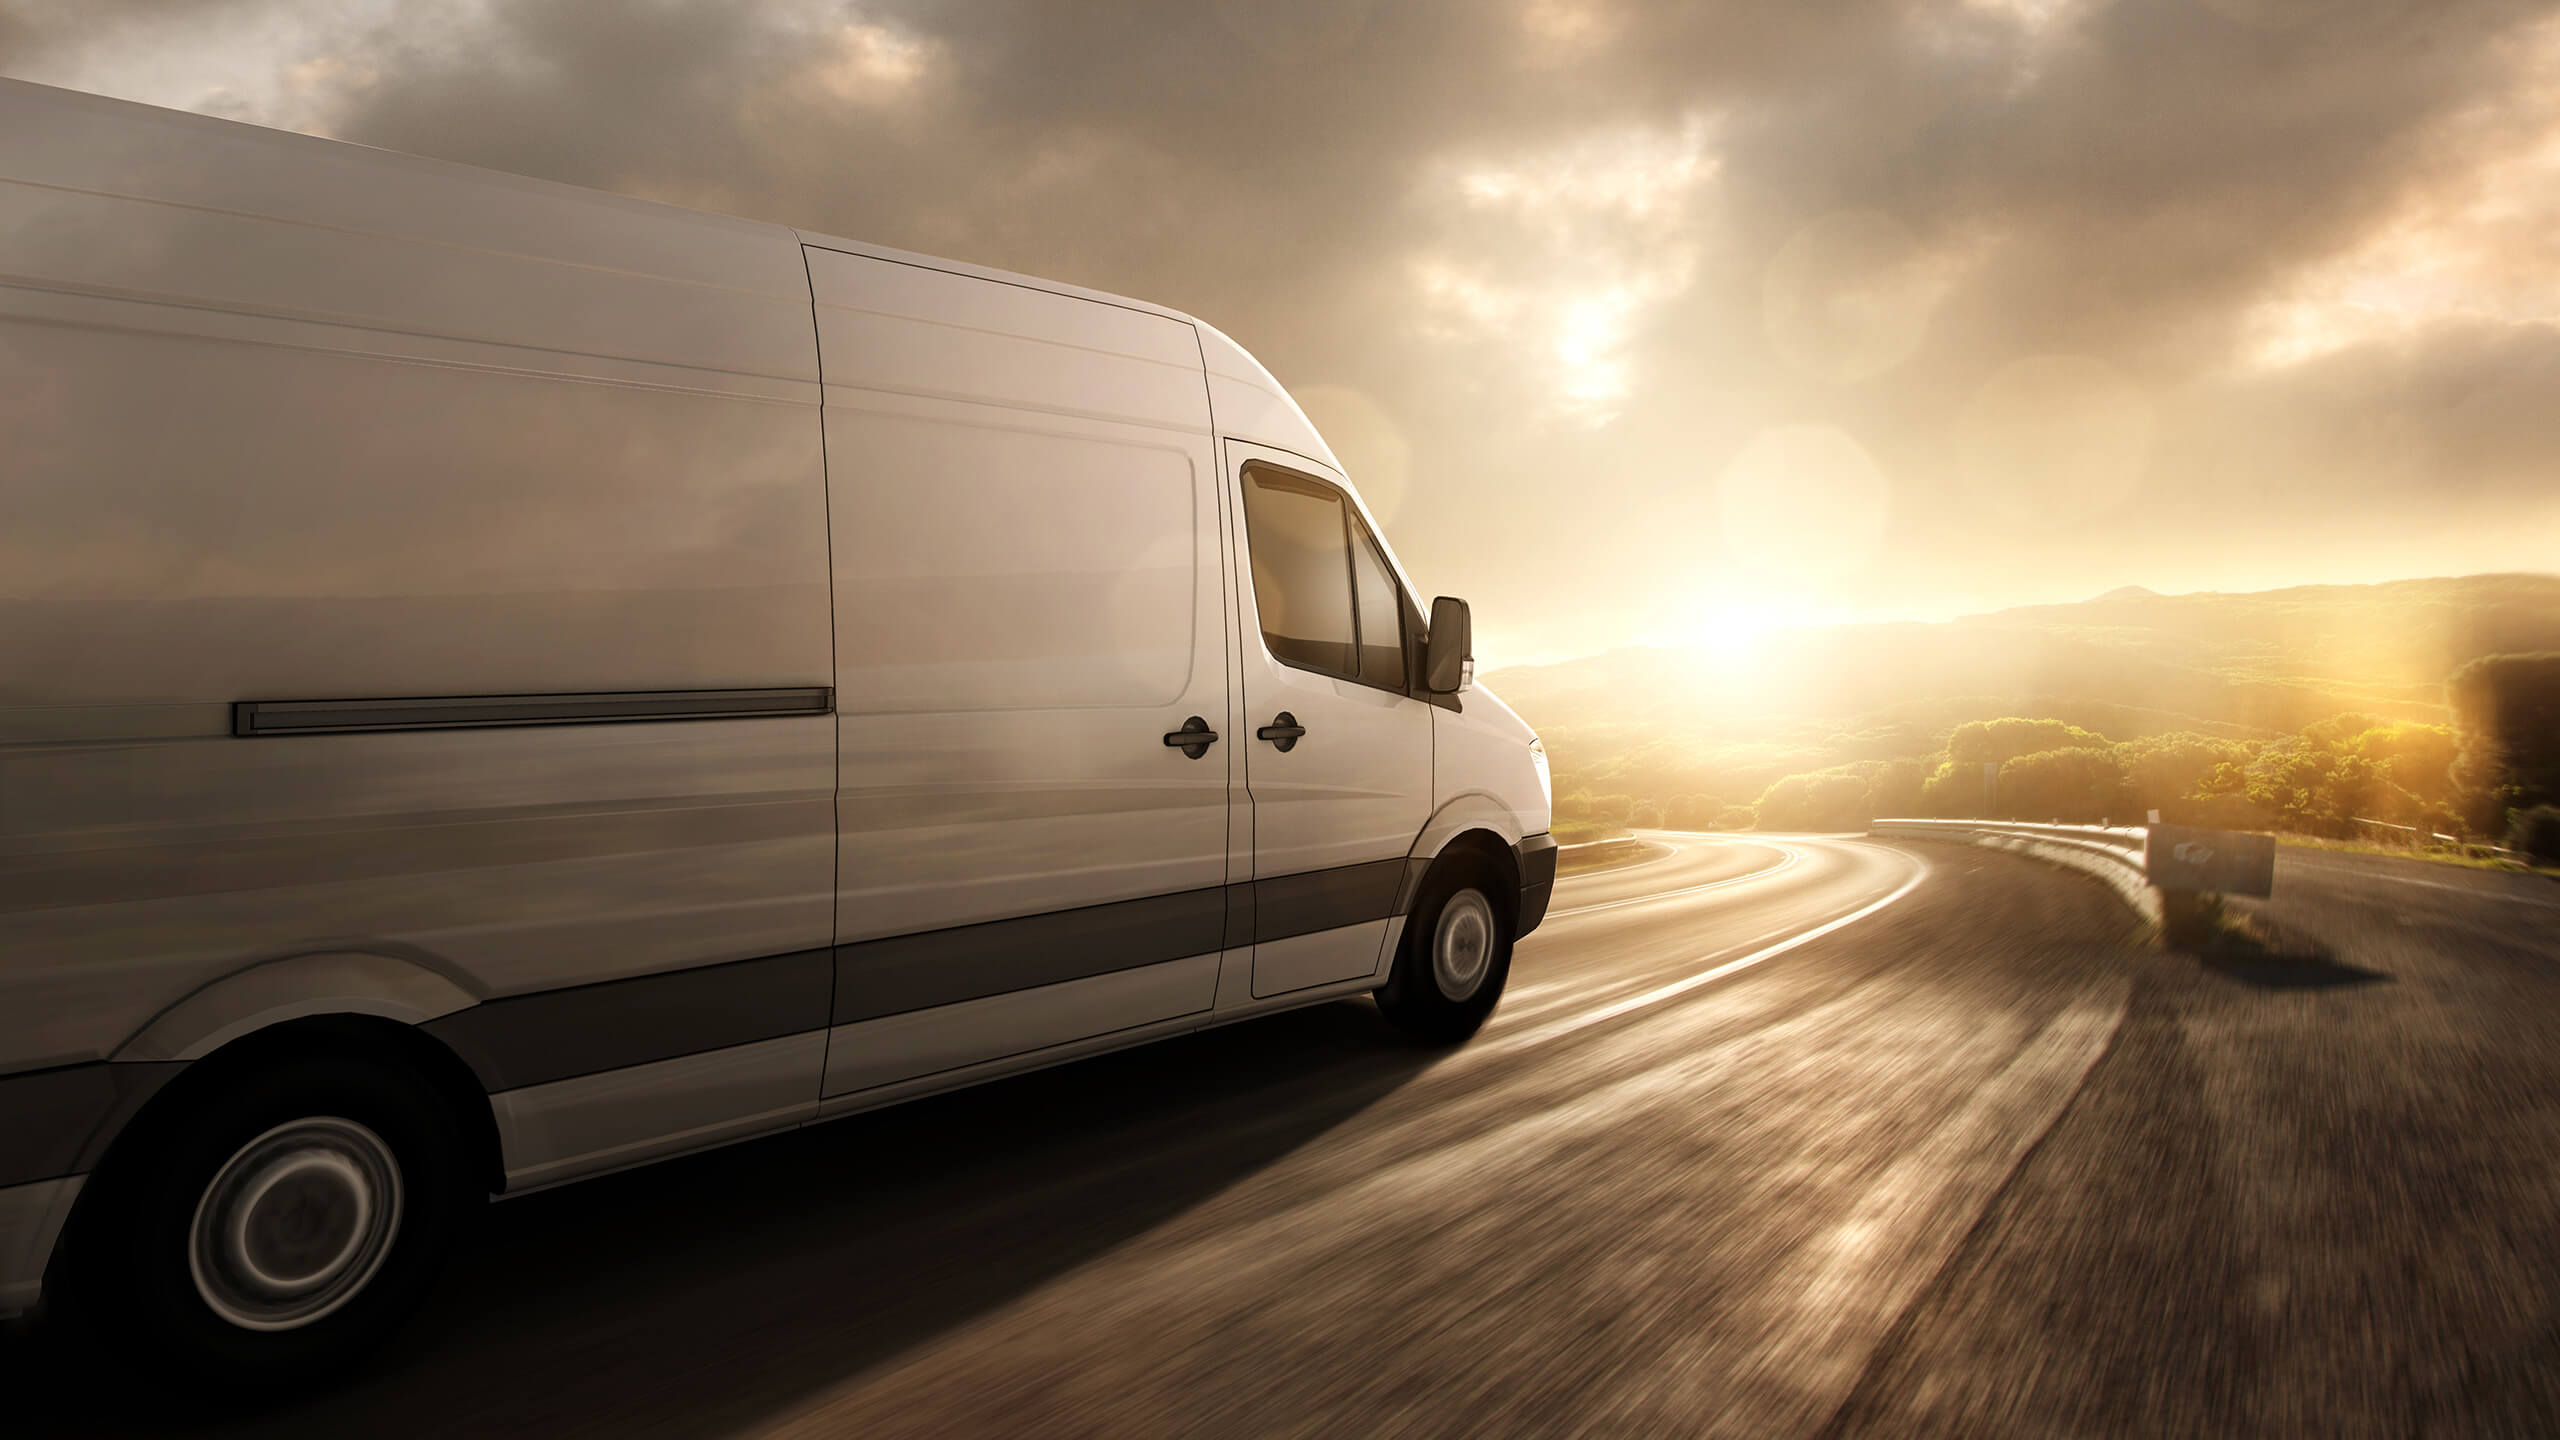 Van drivers at increased risk of sun damage